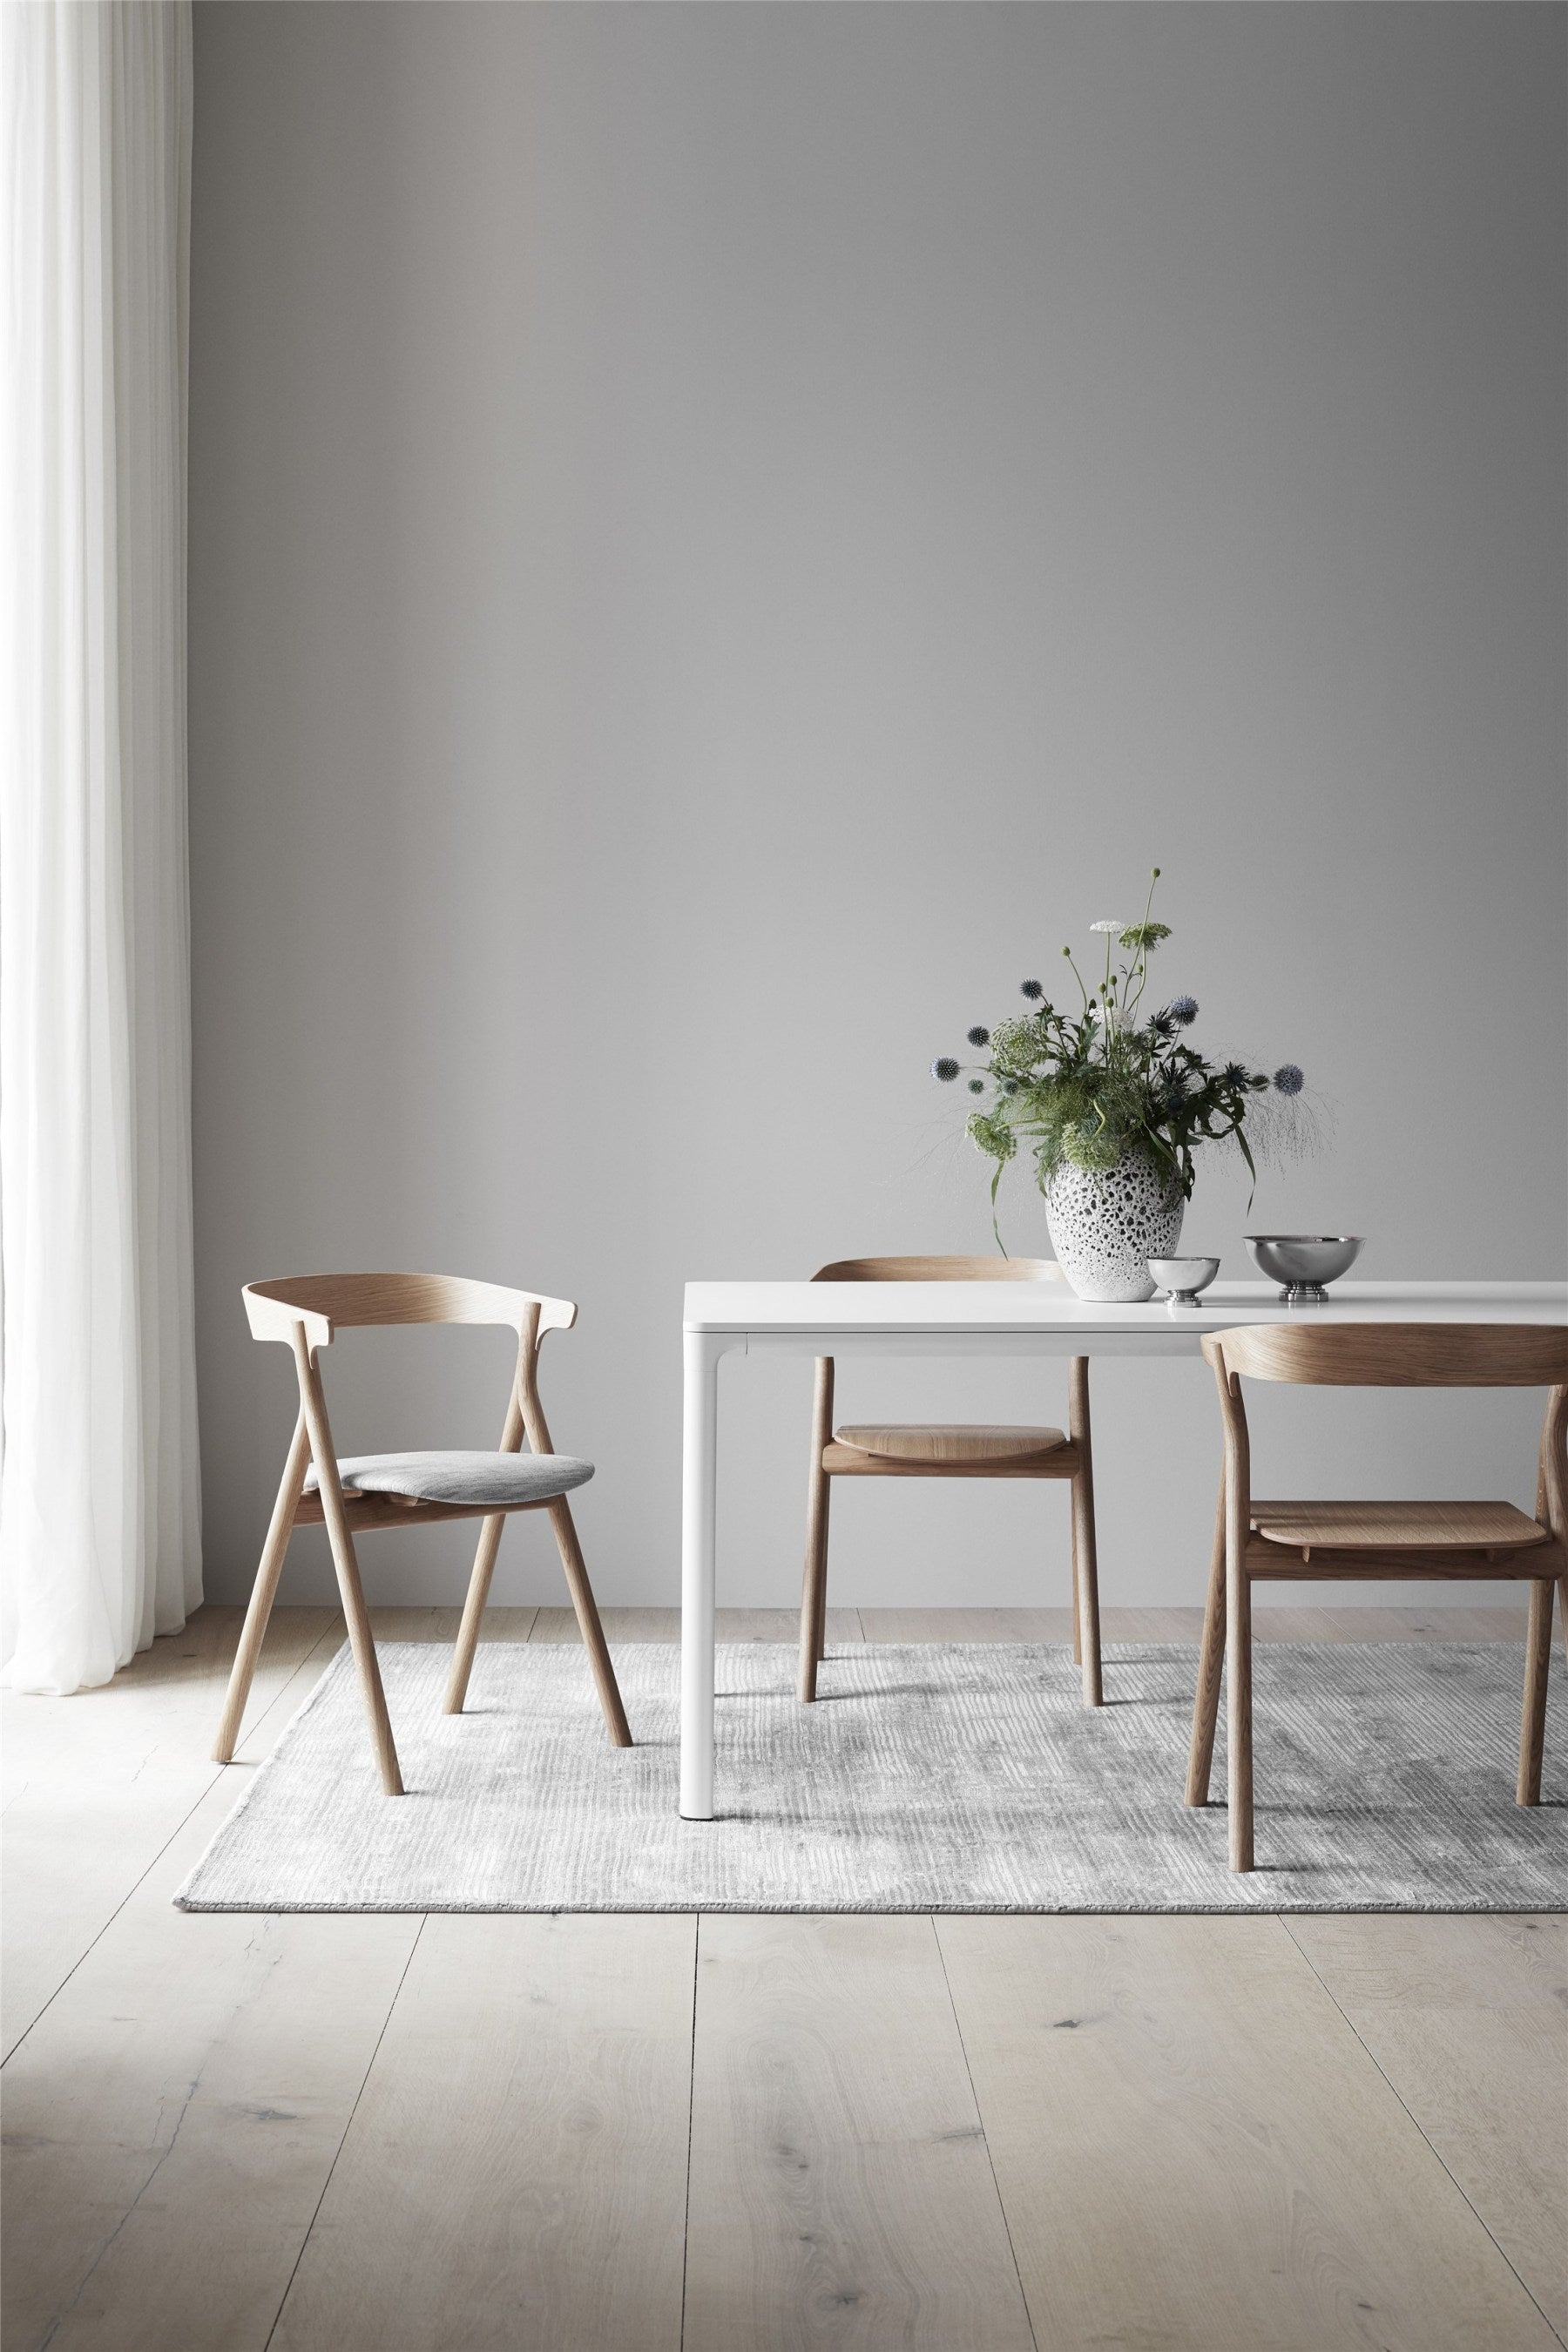 Large dining space lit by very tall window. White table, modern wooden chairs, grey rug, grey walls